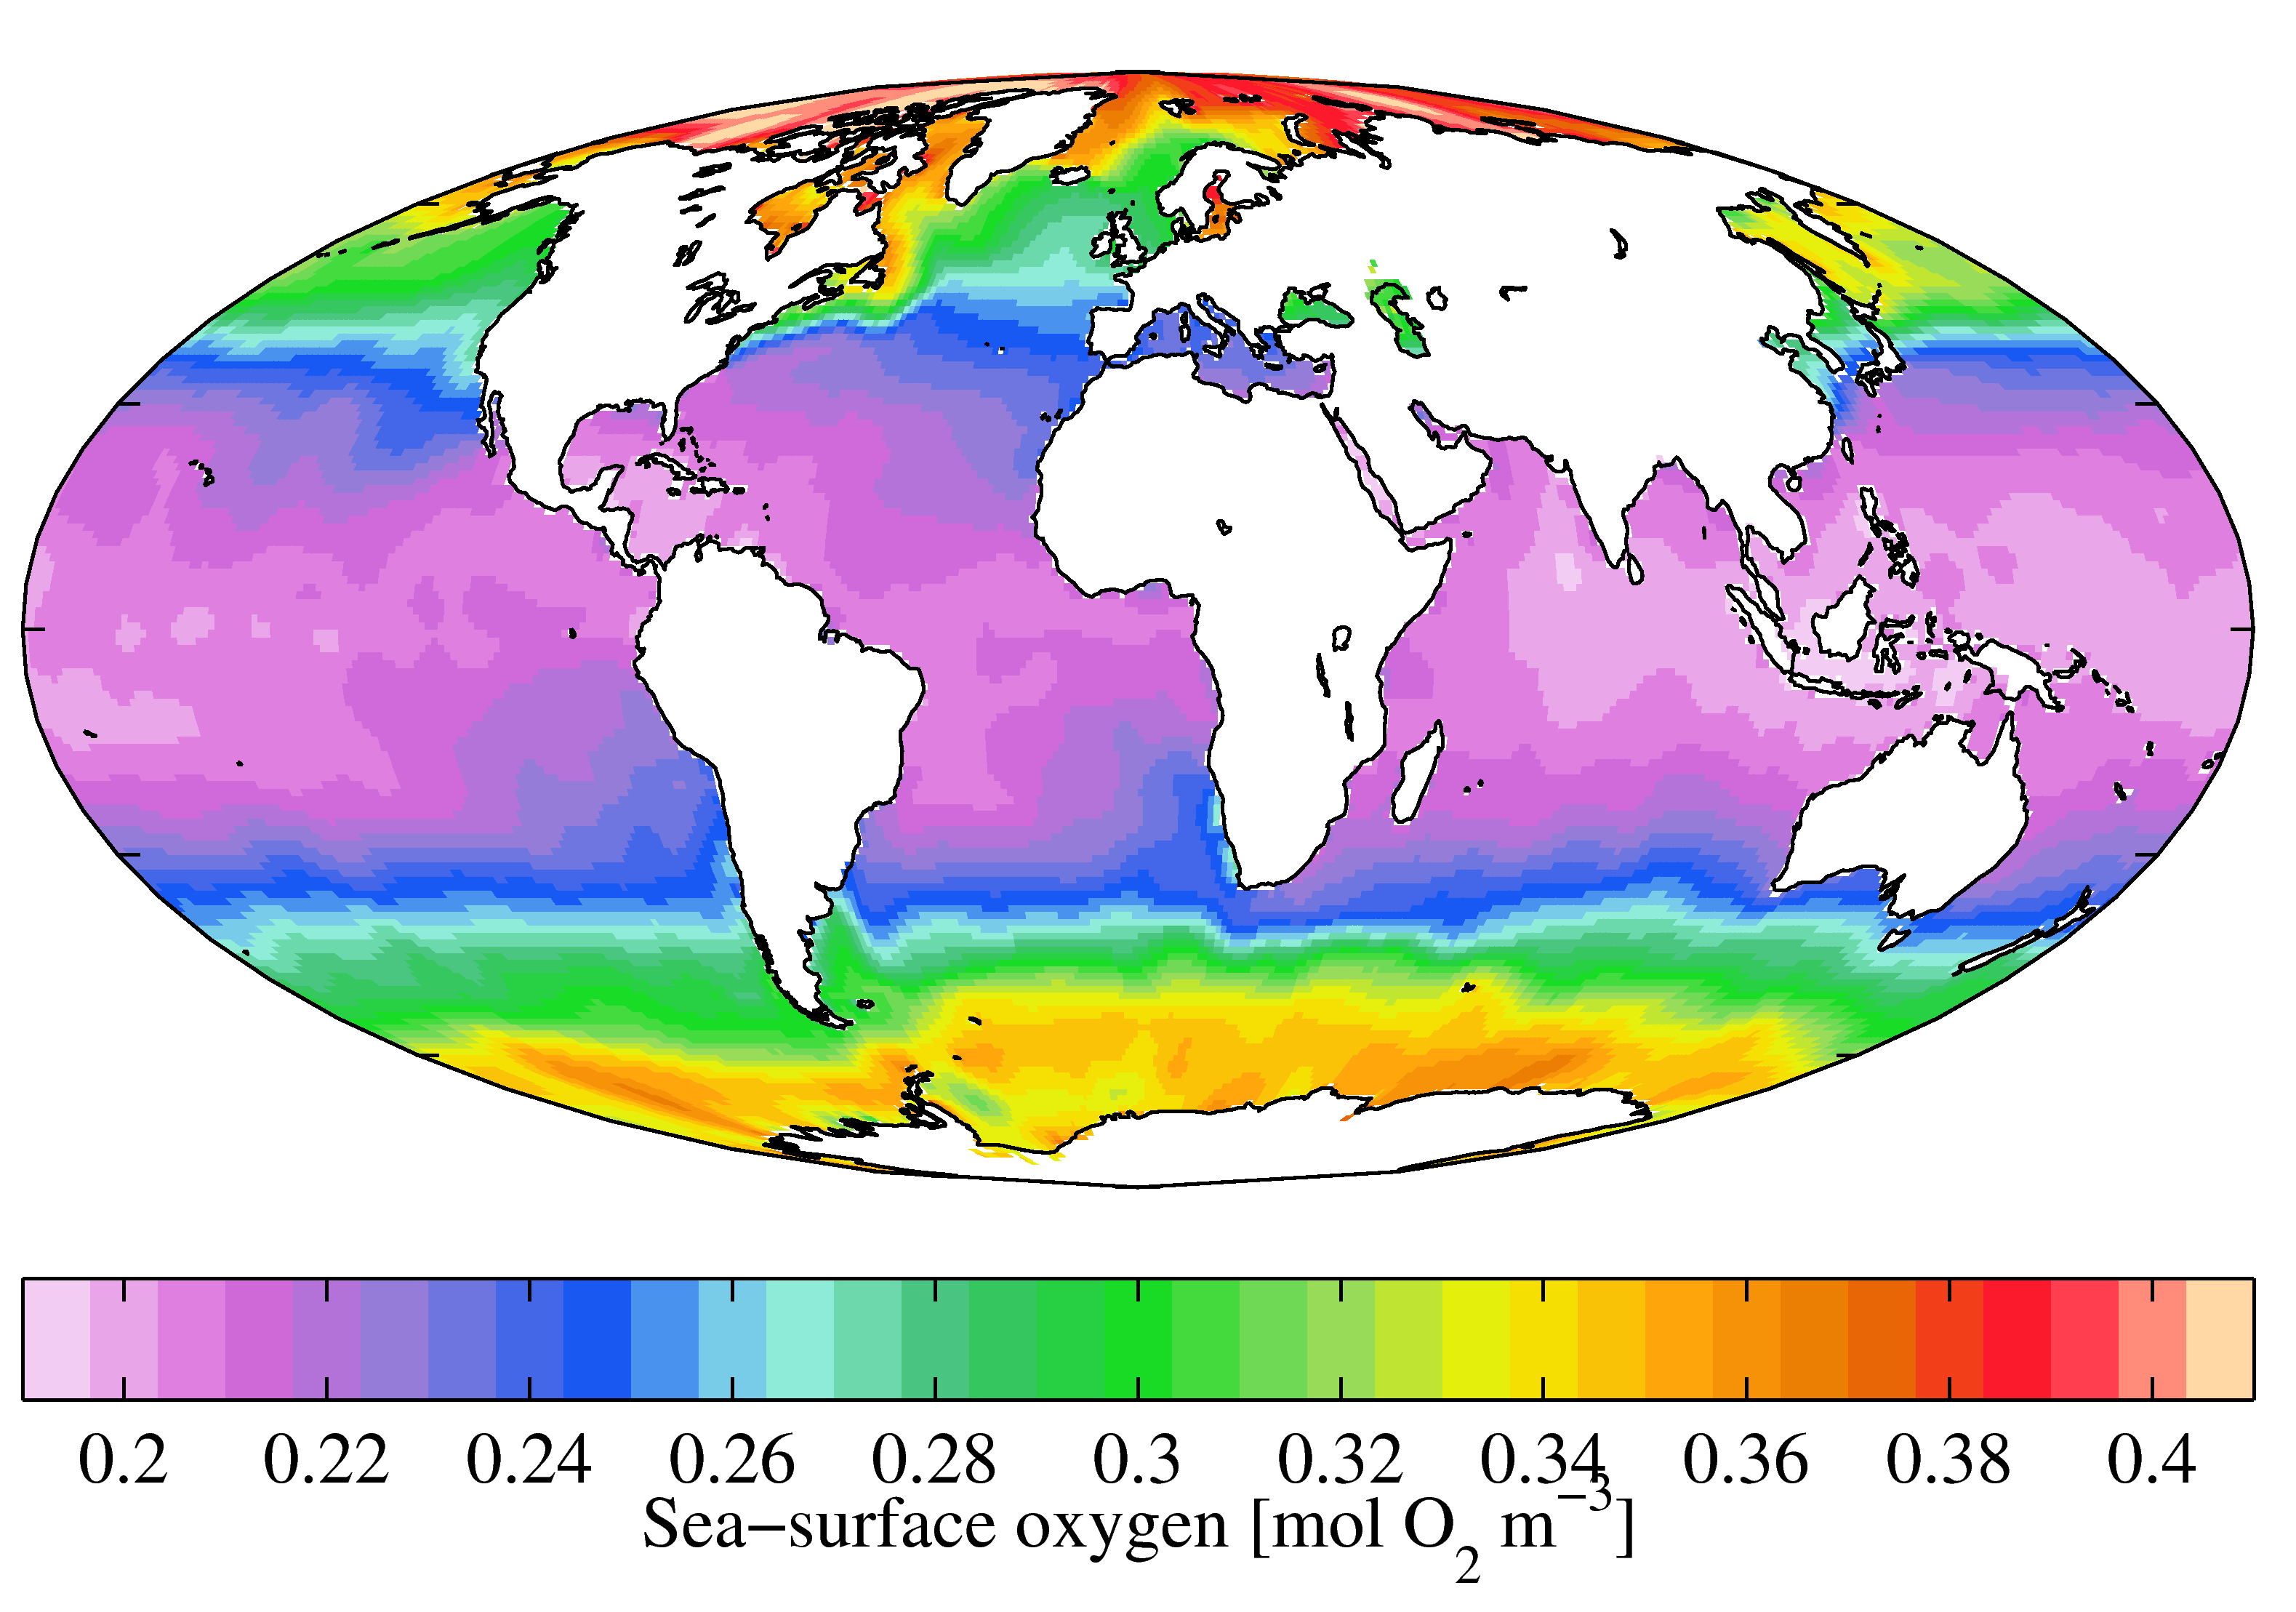 Take my breath away: Decline in oceanic oxygen levels fifty years in the making